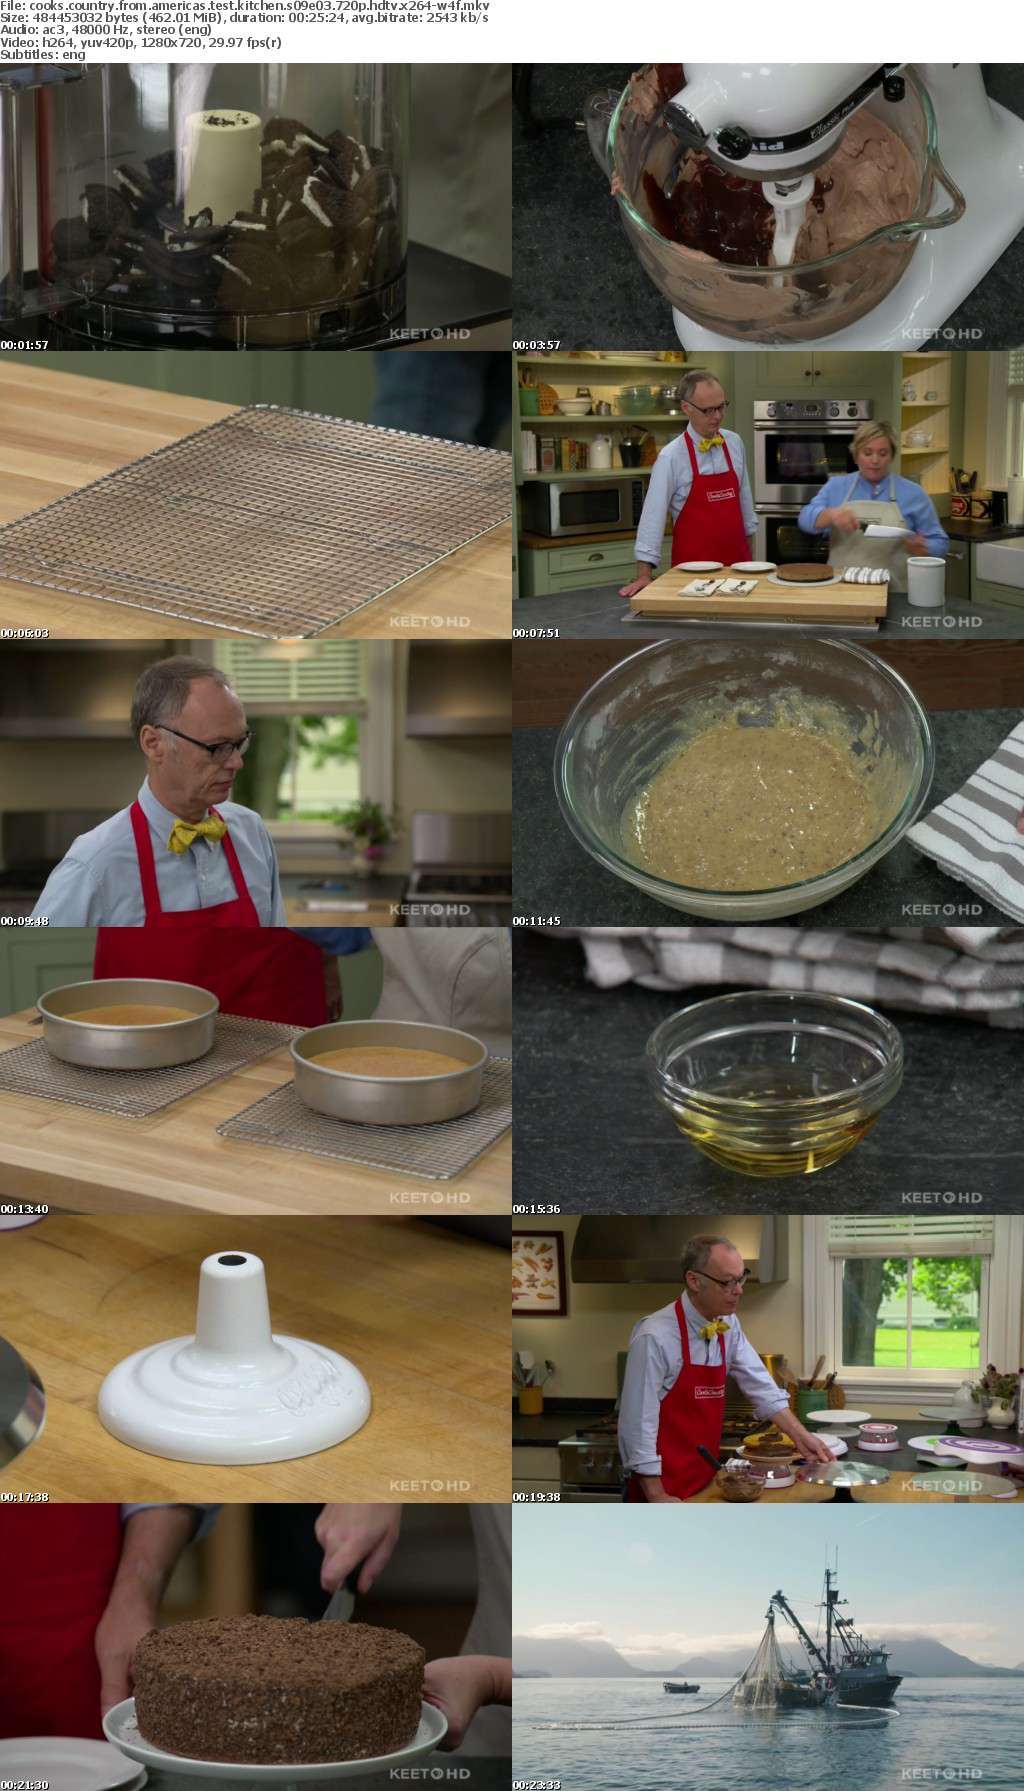 Cooks Country from Americas Test Kitchen S09E03 720p HDTV x264-W4F